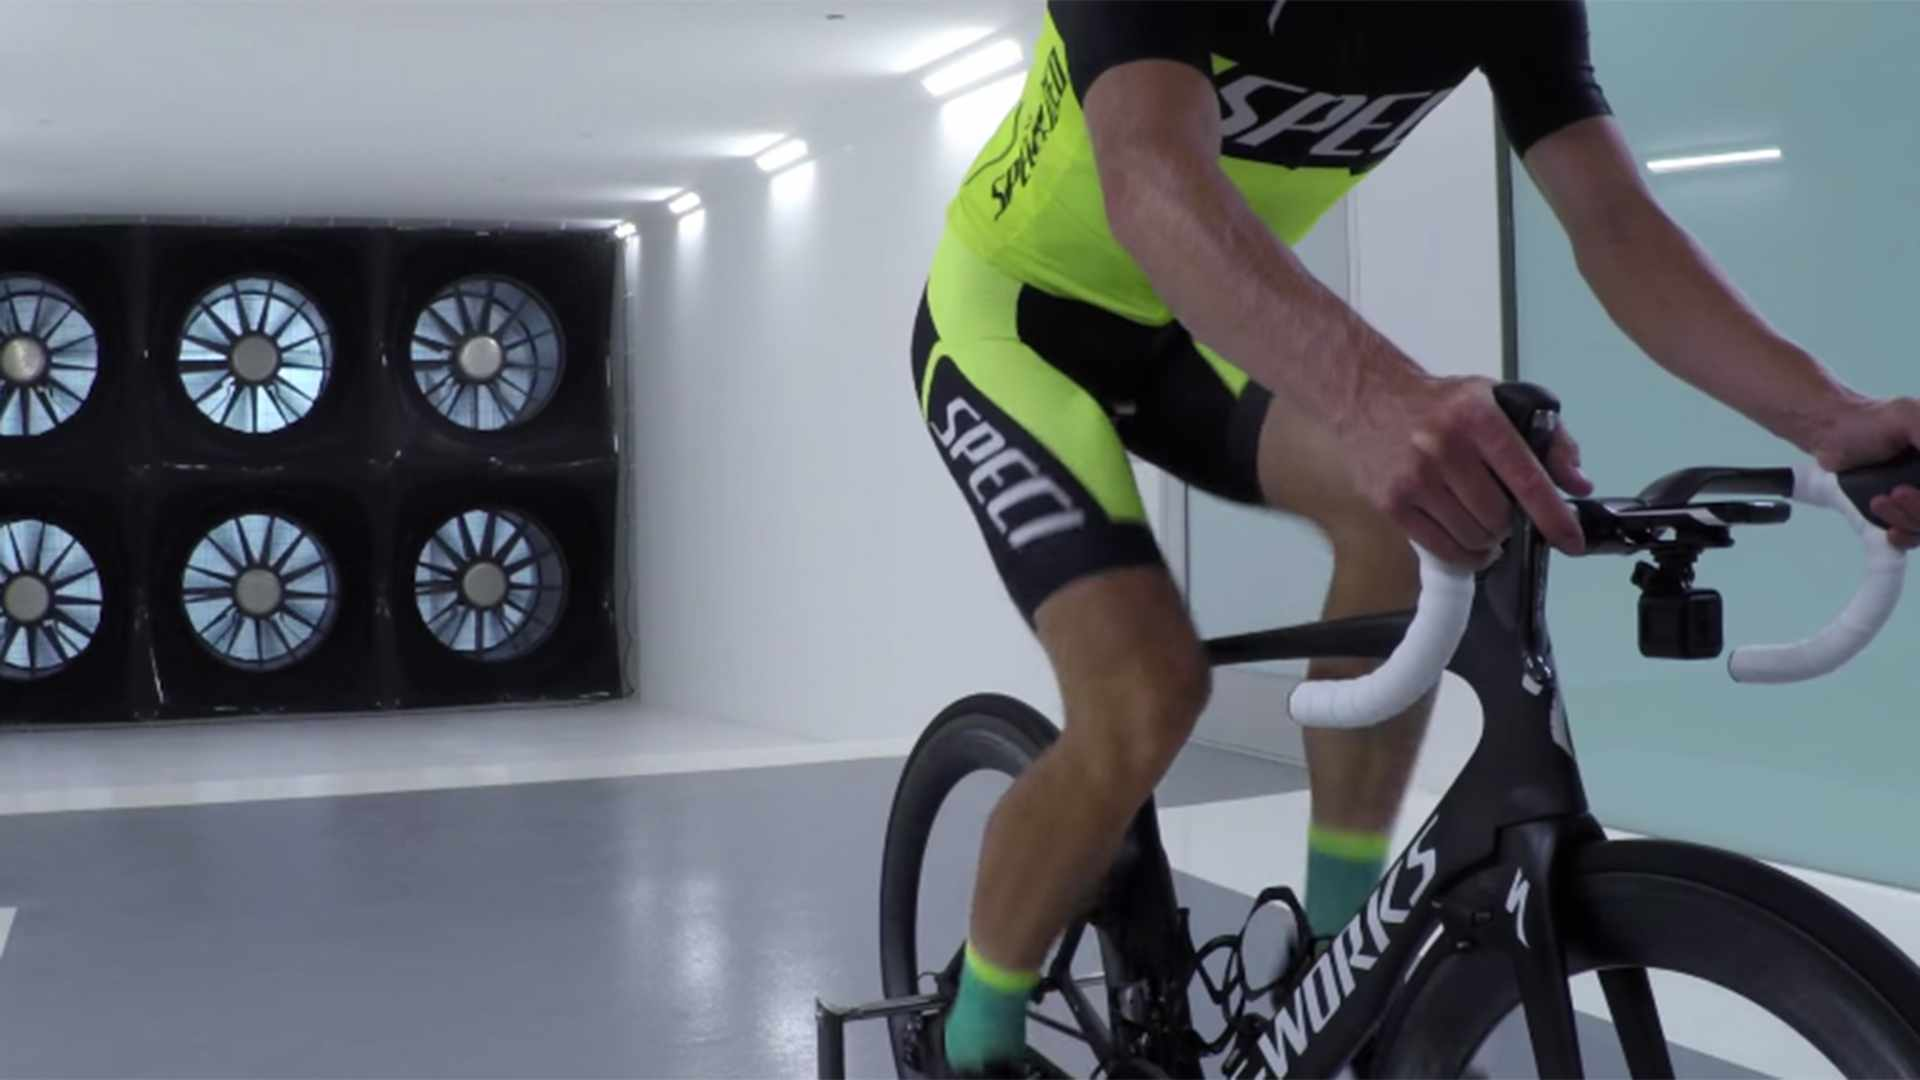 Specialized used its own wind tunnel to determine the aerodynamic penalty of carrying a GoPro camera